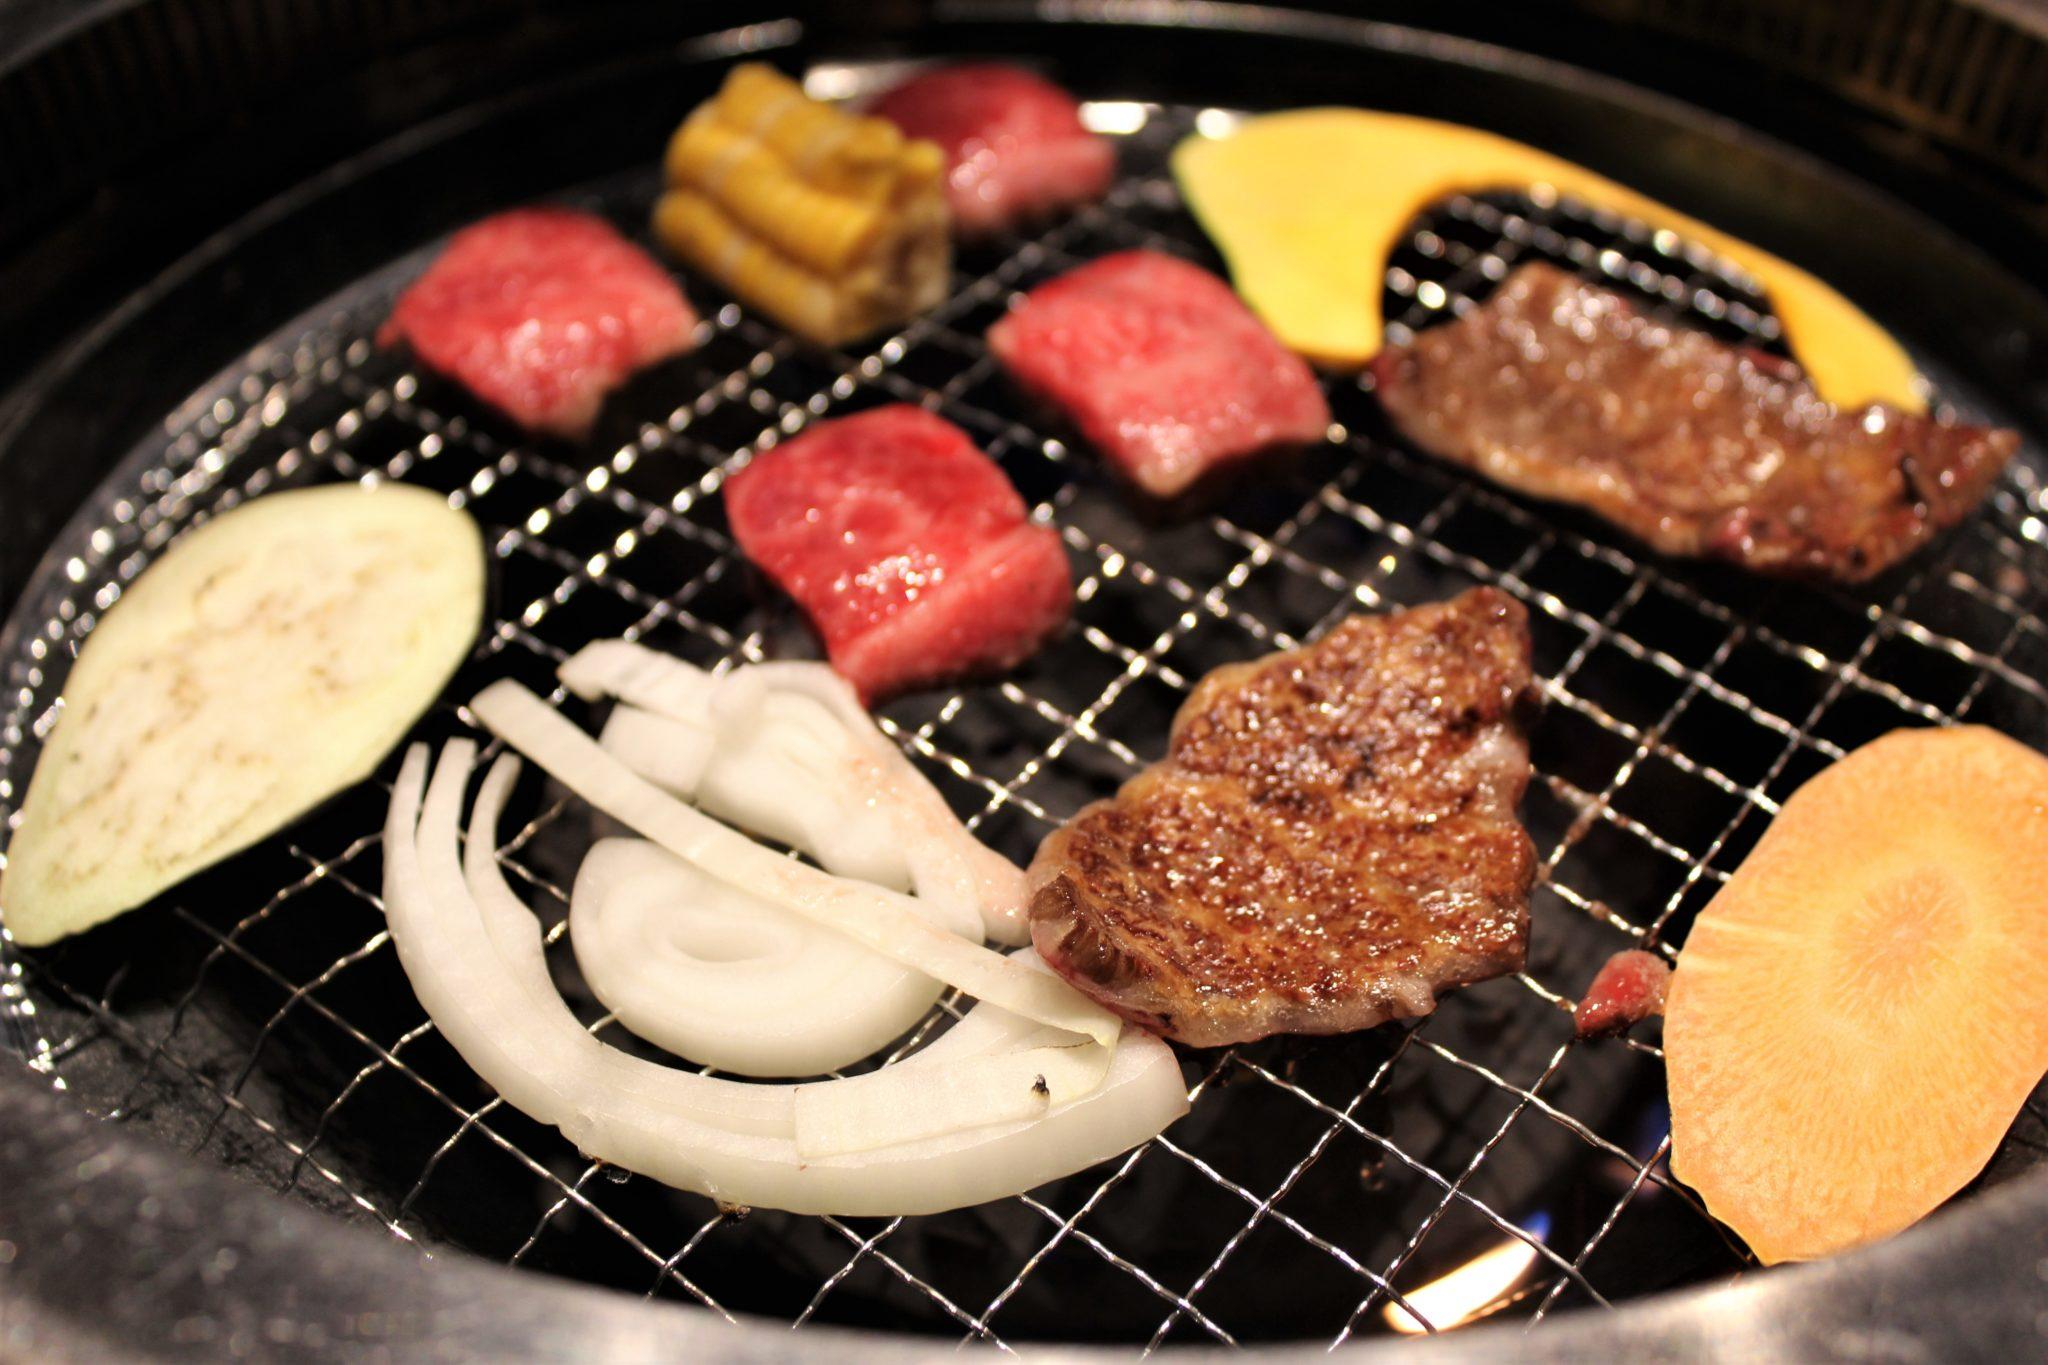 Affordable Kobe beef in Kobe shot of meat cooking on grill with vegetables